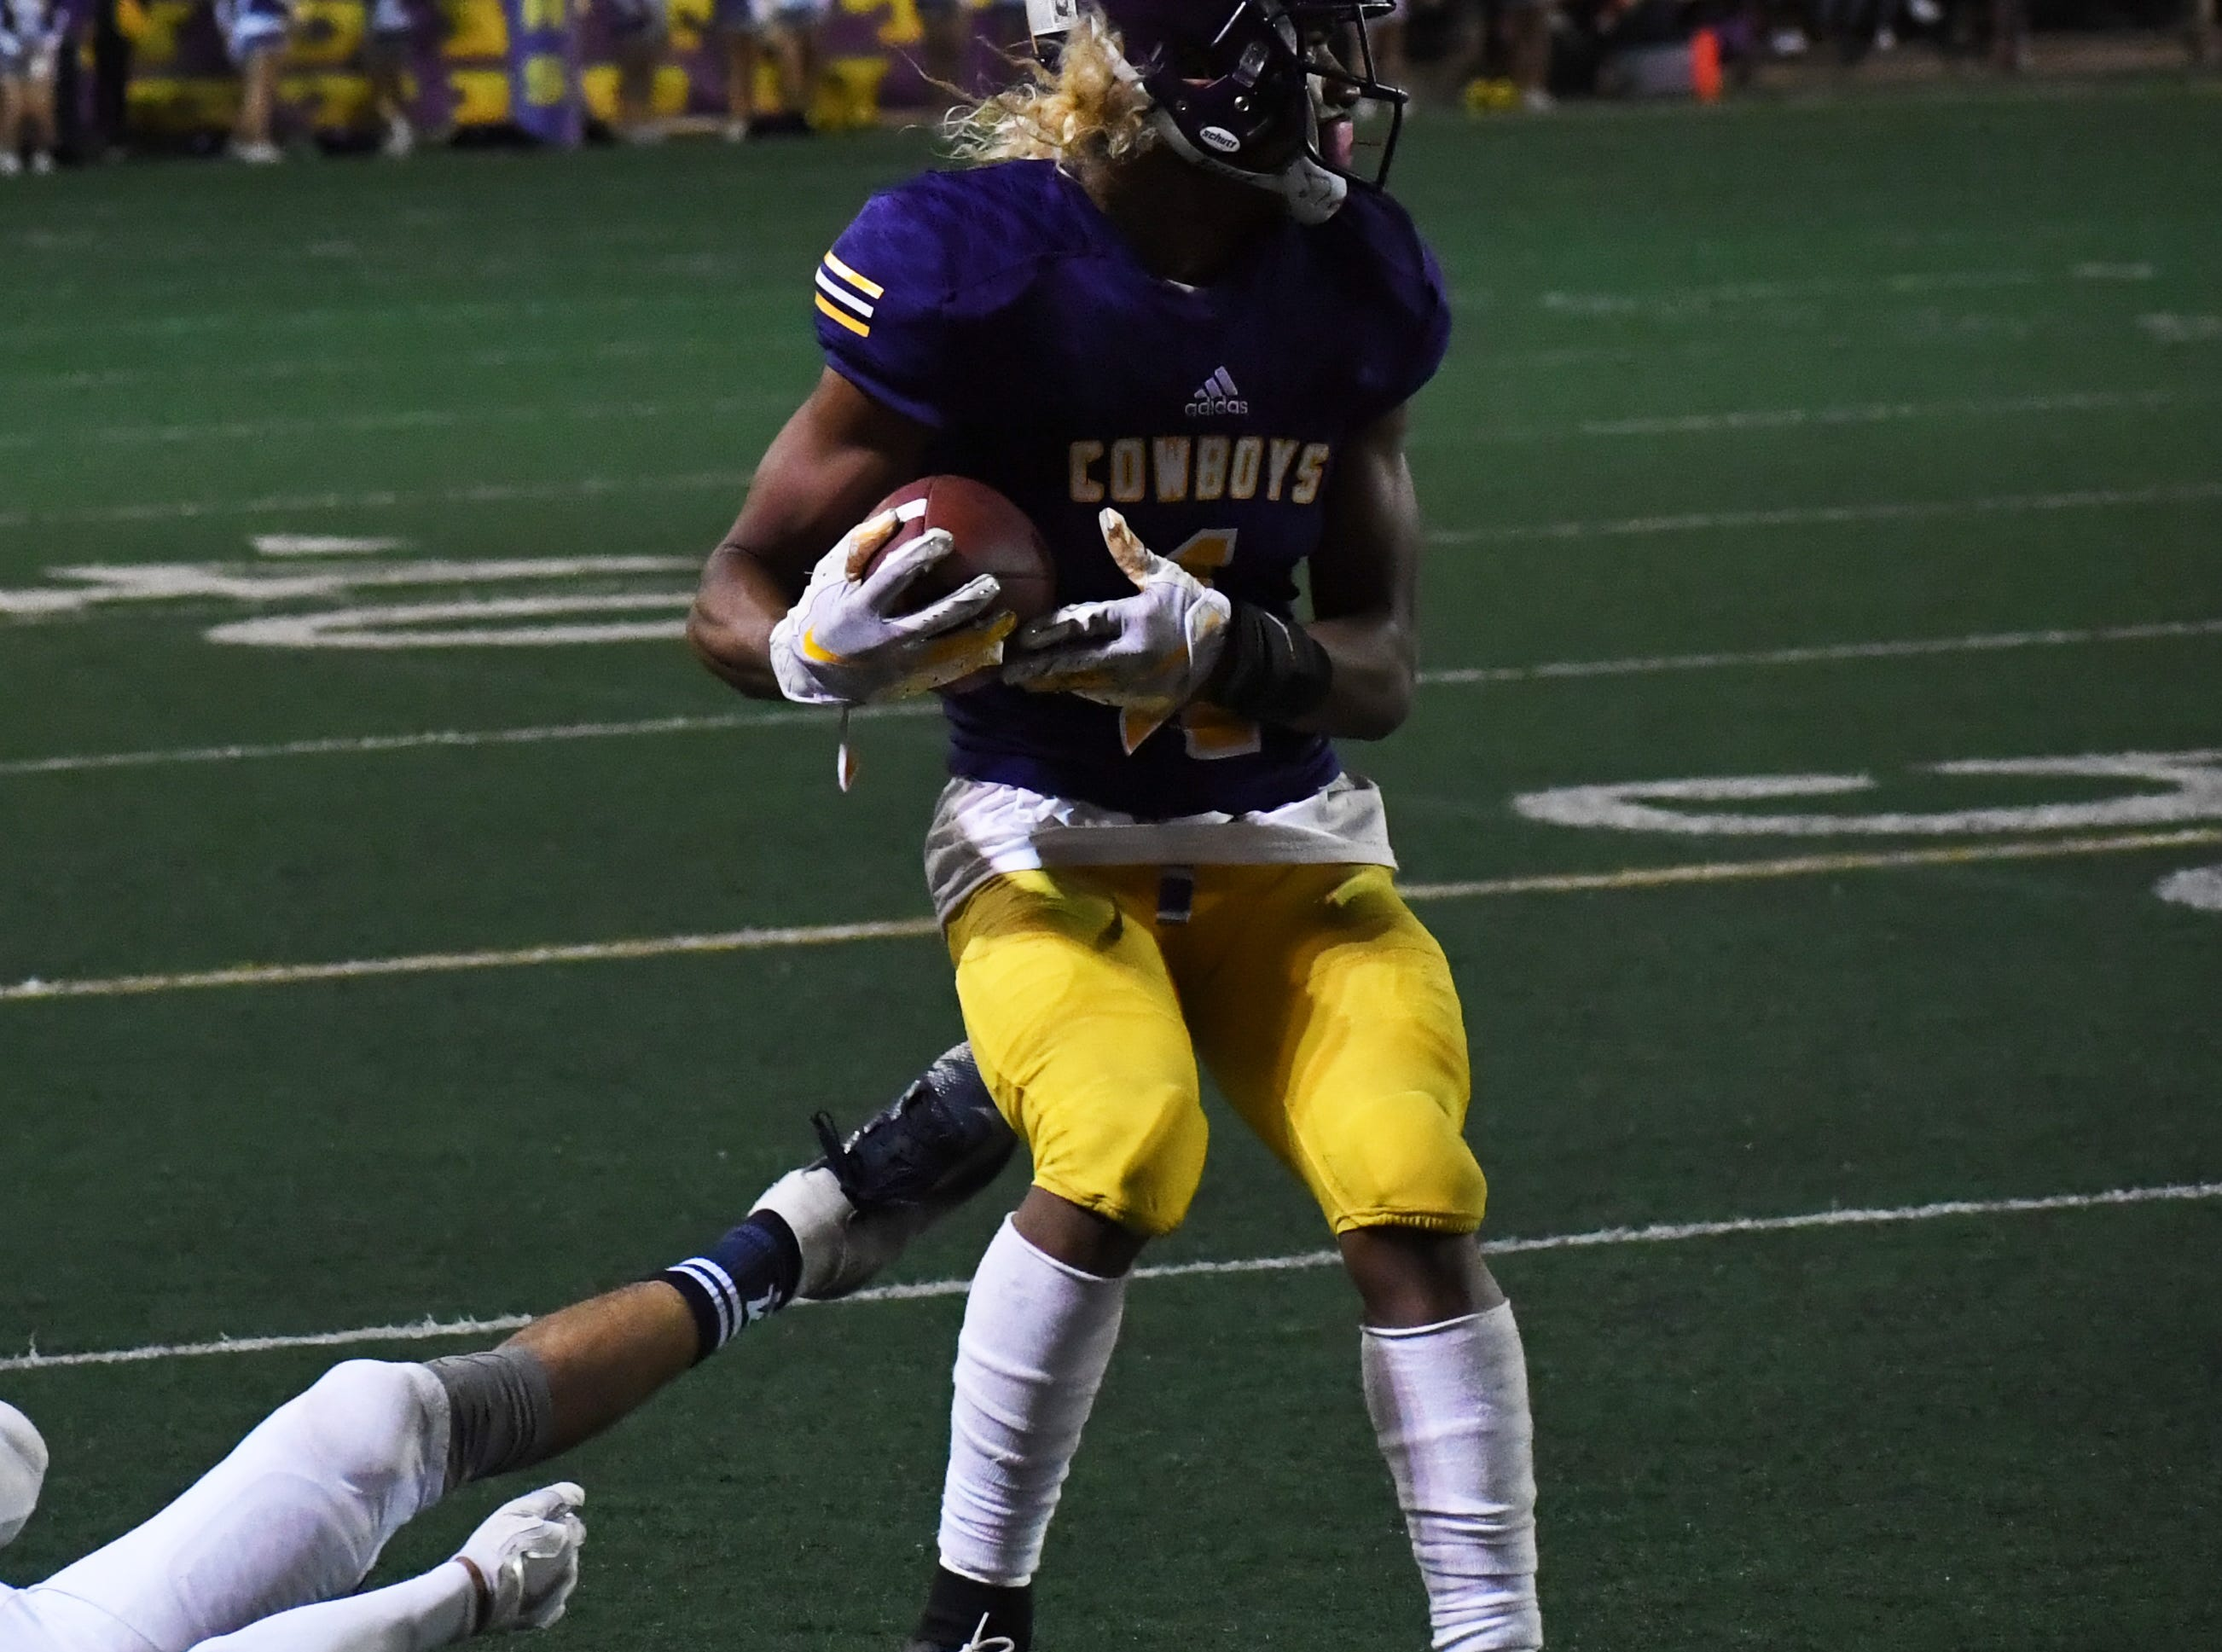 Salinas wide receiver Poe Gaskins Jr. (1) spins out of a tackle and turns upfield.